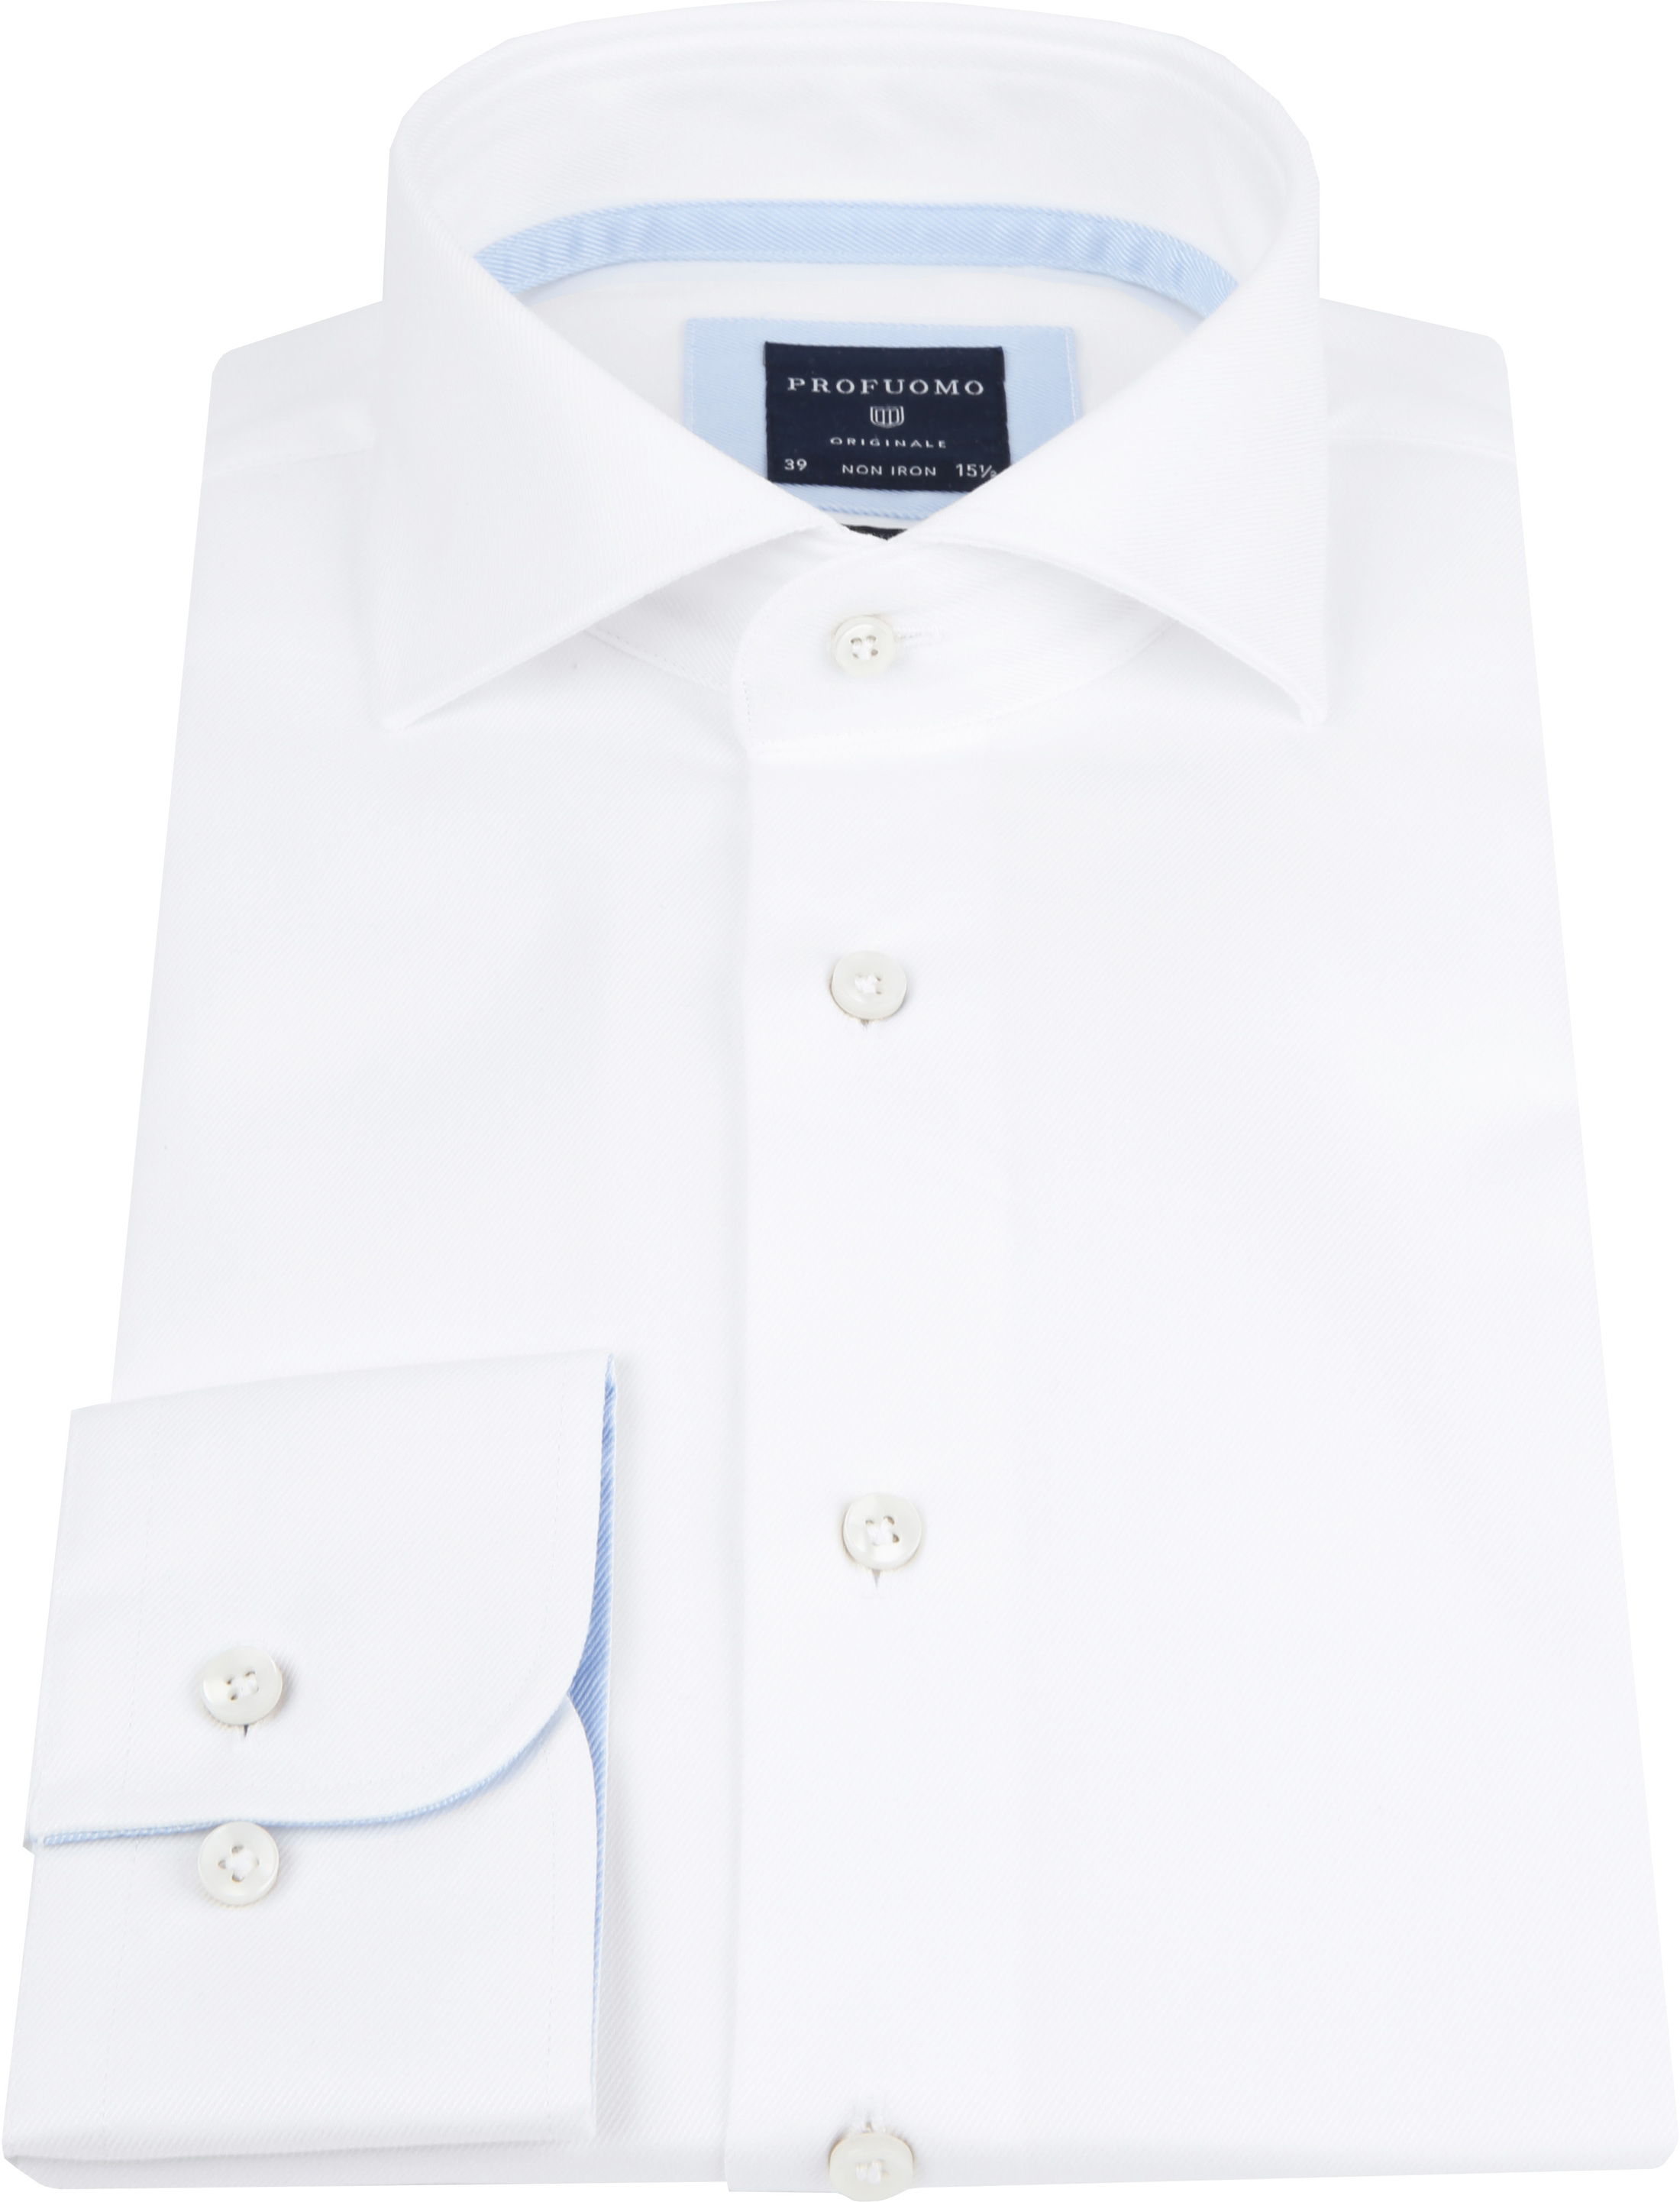 Profuomo Shirt White Blue Accent foto 2